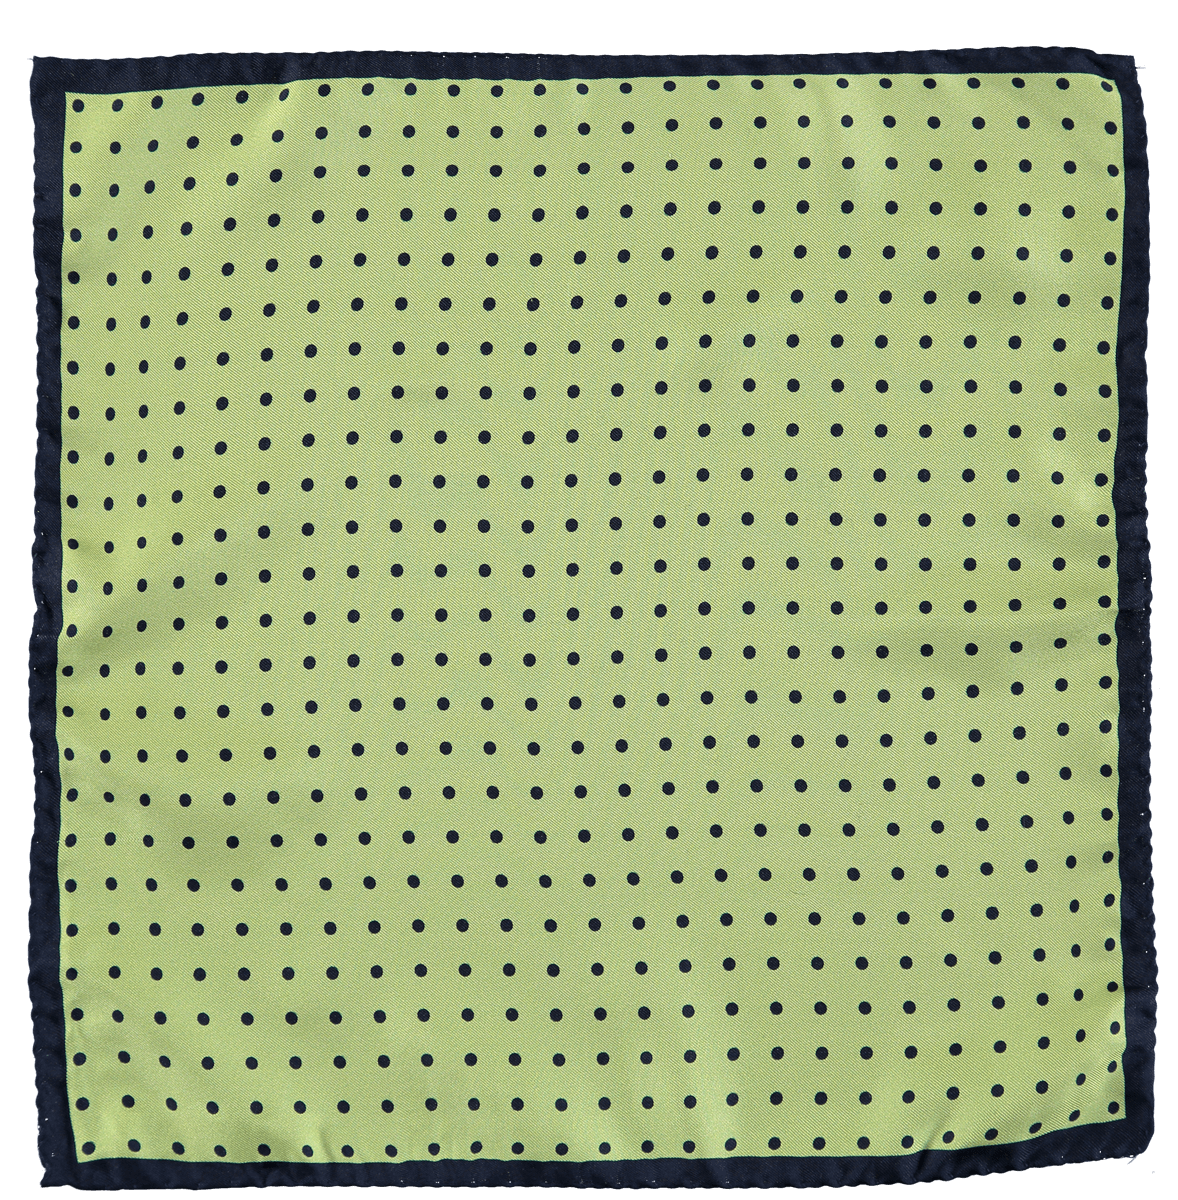 menswear-accessories-silk-pocket-square-lime-navy-spots-3